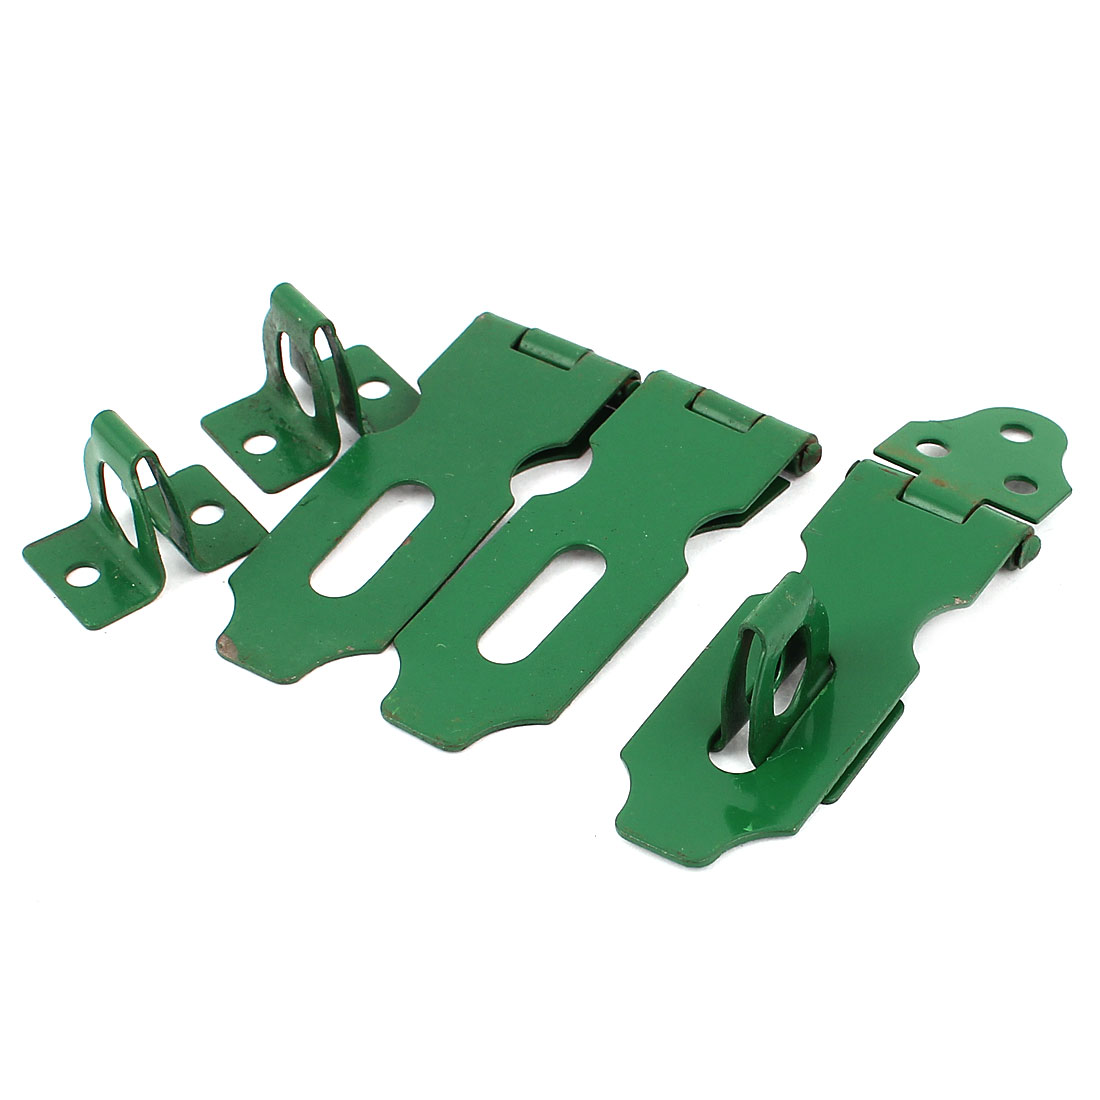 3 Pcs Home Cupboard Cabinets Doors Latch Hasp Staple Set 6cm Long Green